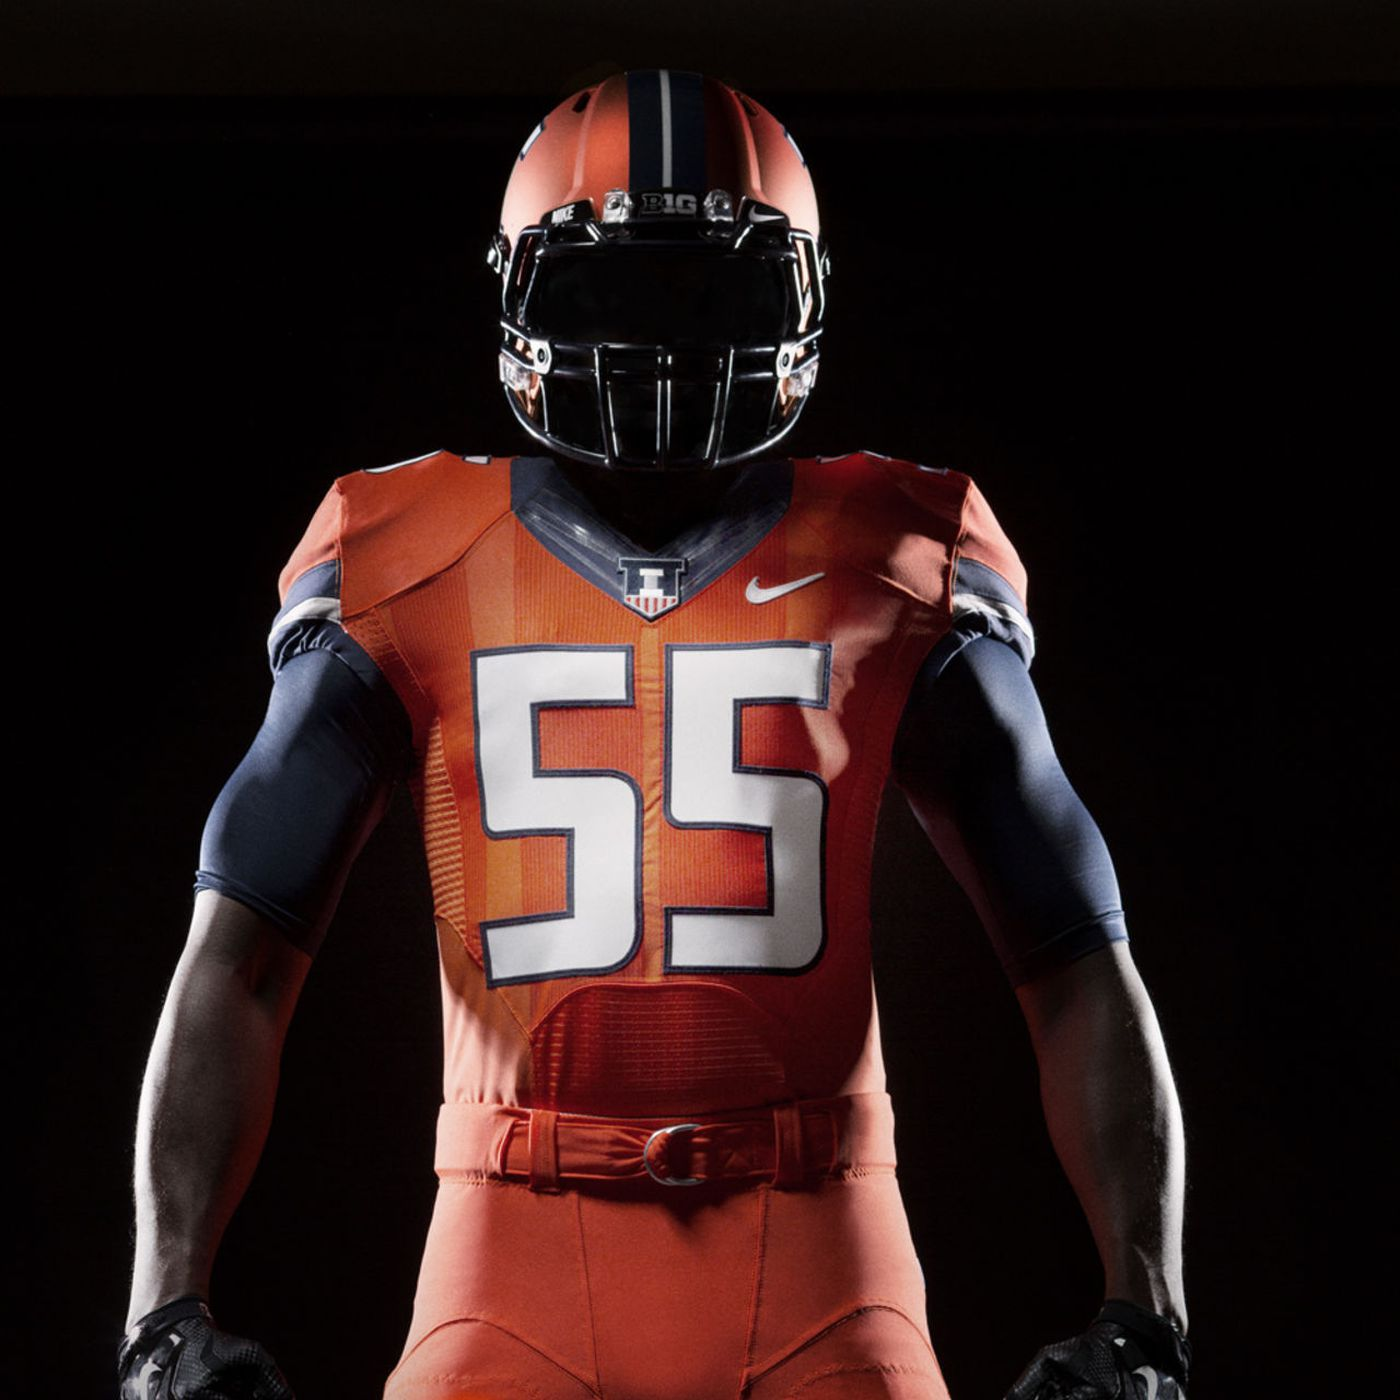 The Top 10 Illinois Football Uniforms Of All Time Ranked The Champaign Room